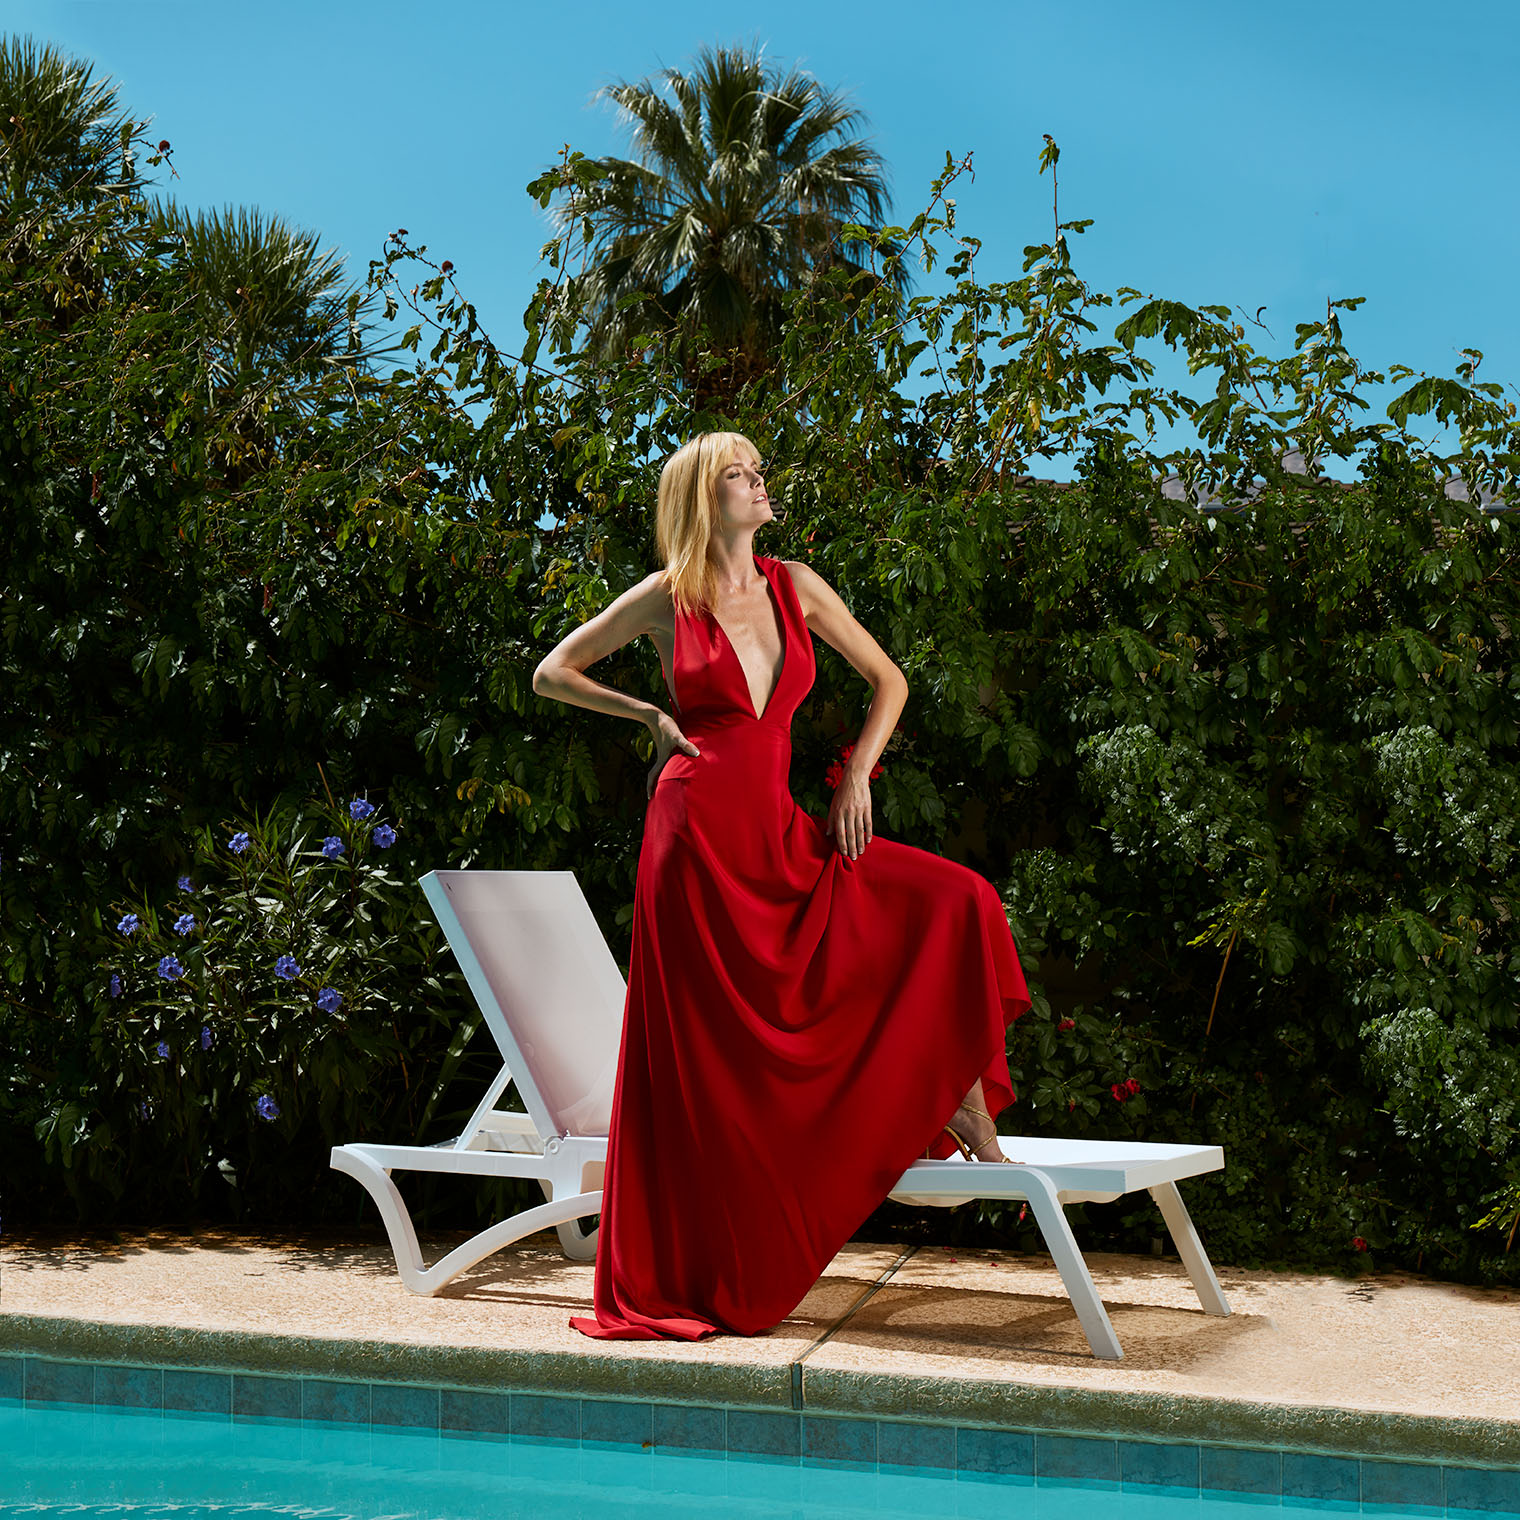 The Lady in Red - Storytelling in Fashion Photography